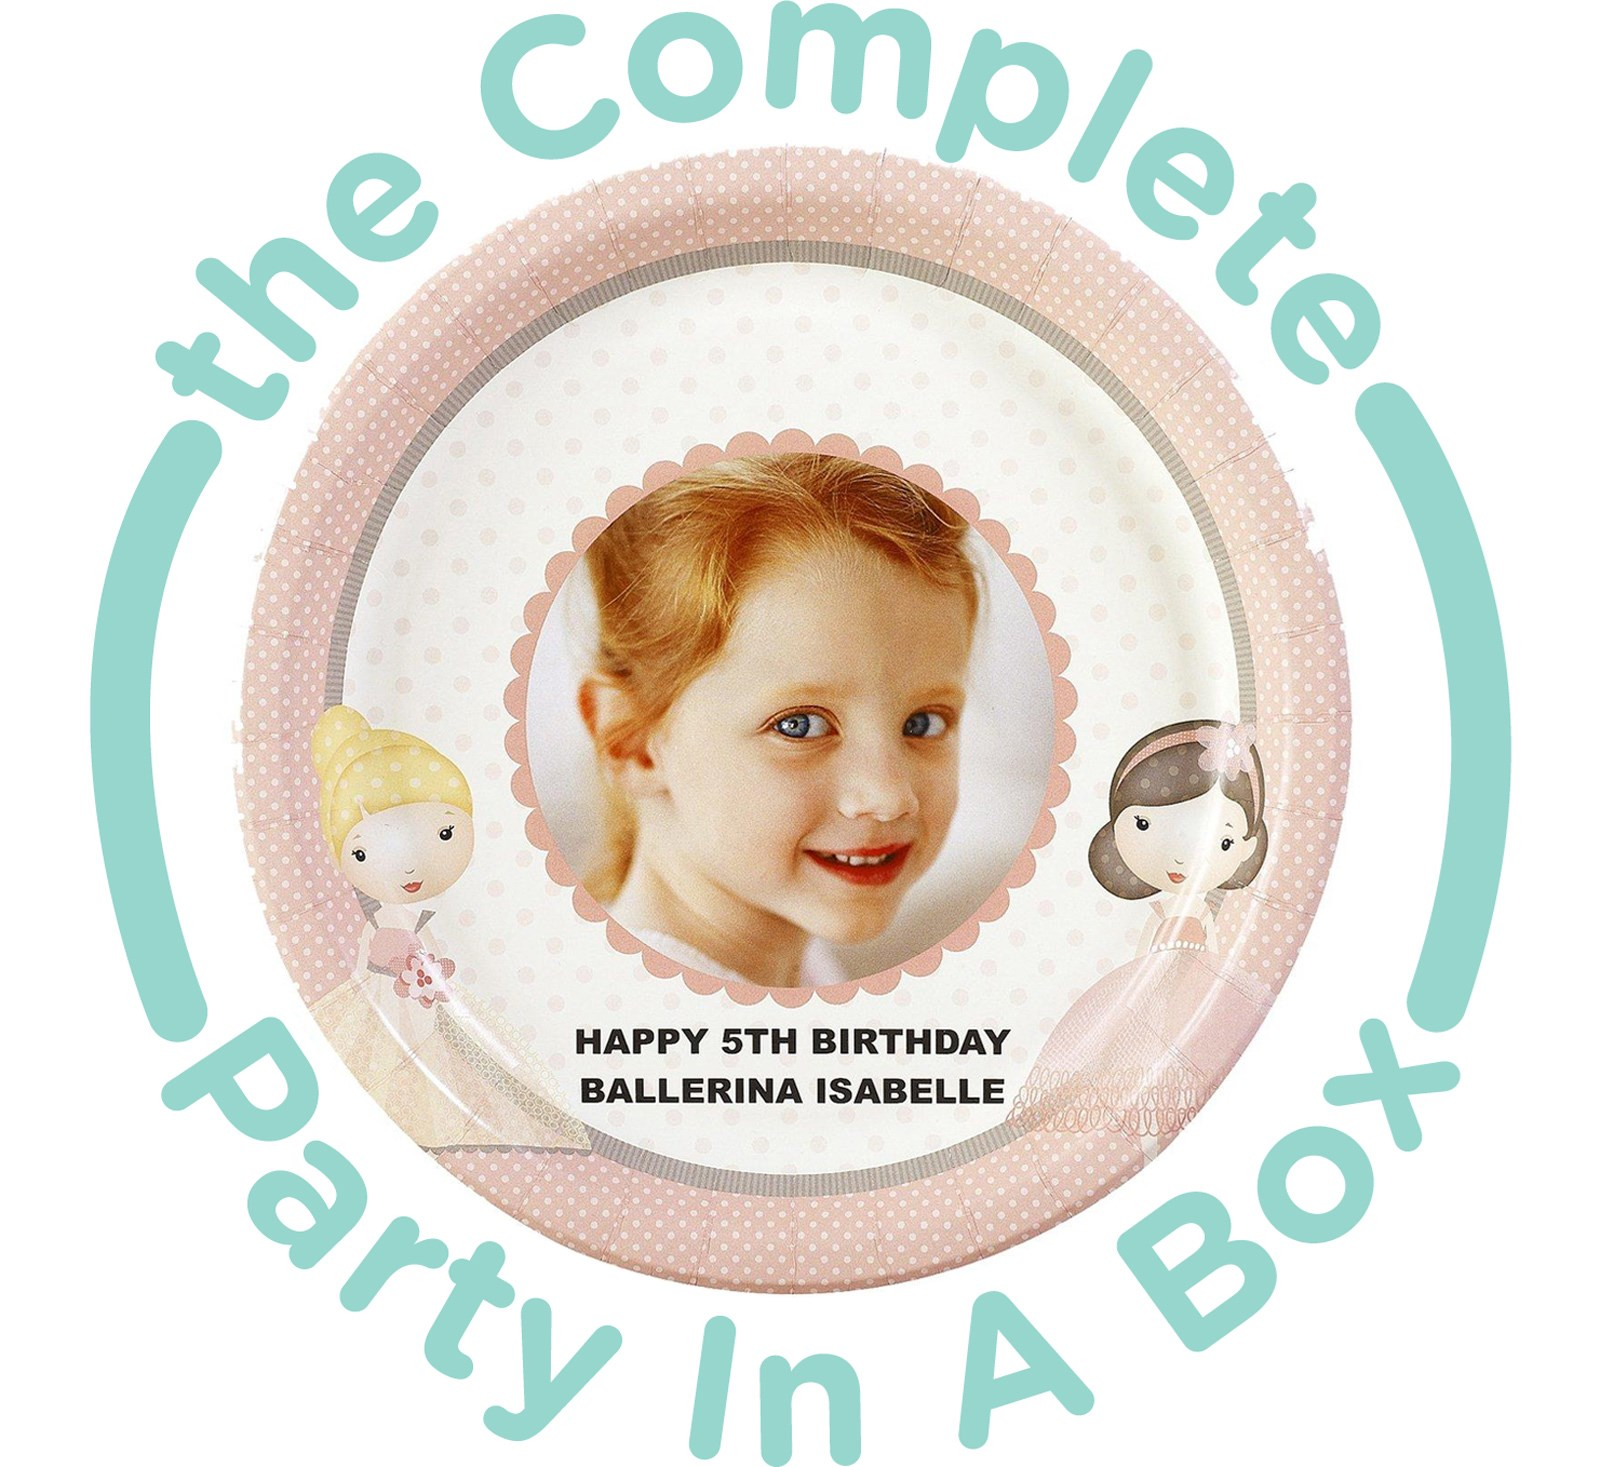 Image of Ballerina Tutu Personalized Party in a Box - Basic - 16 Guests